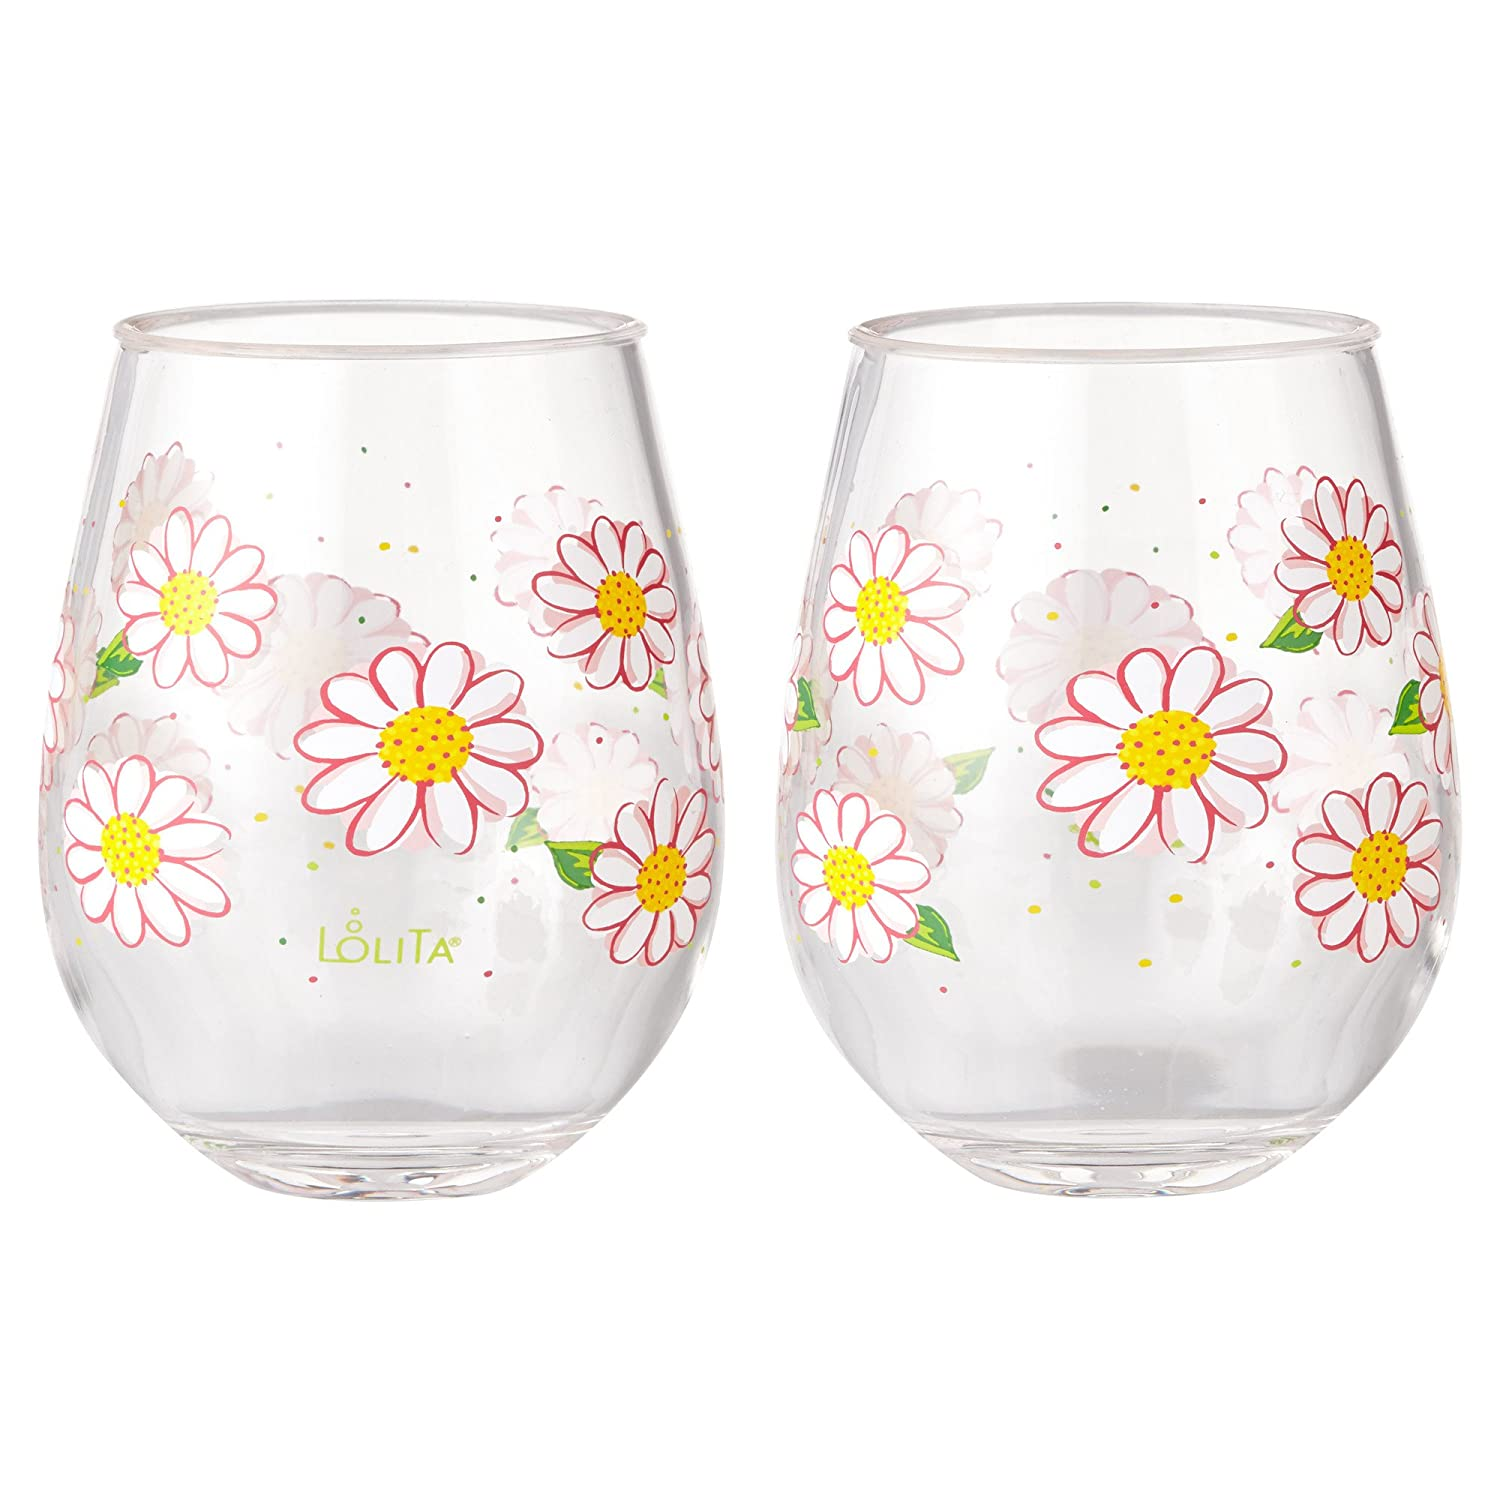 76595606310 Enesco Designs by Lolita Oops a Daisy Acrylic Stemless Wine Glasses, Set of  2, 17 oz.